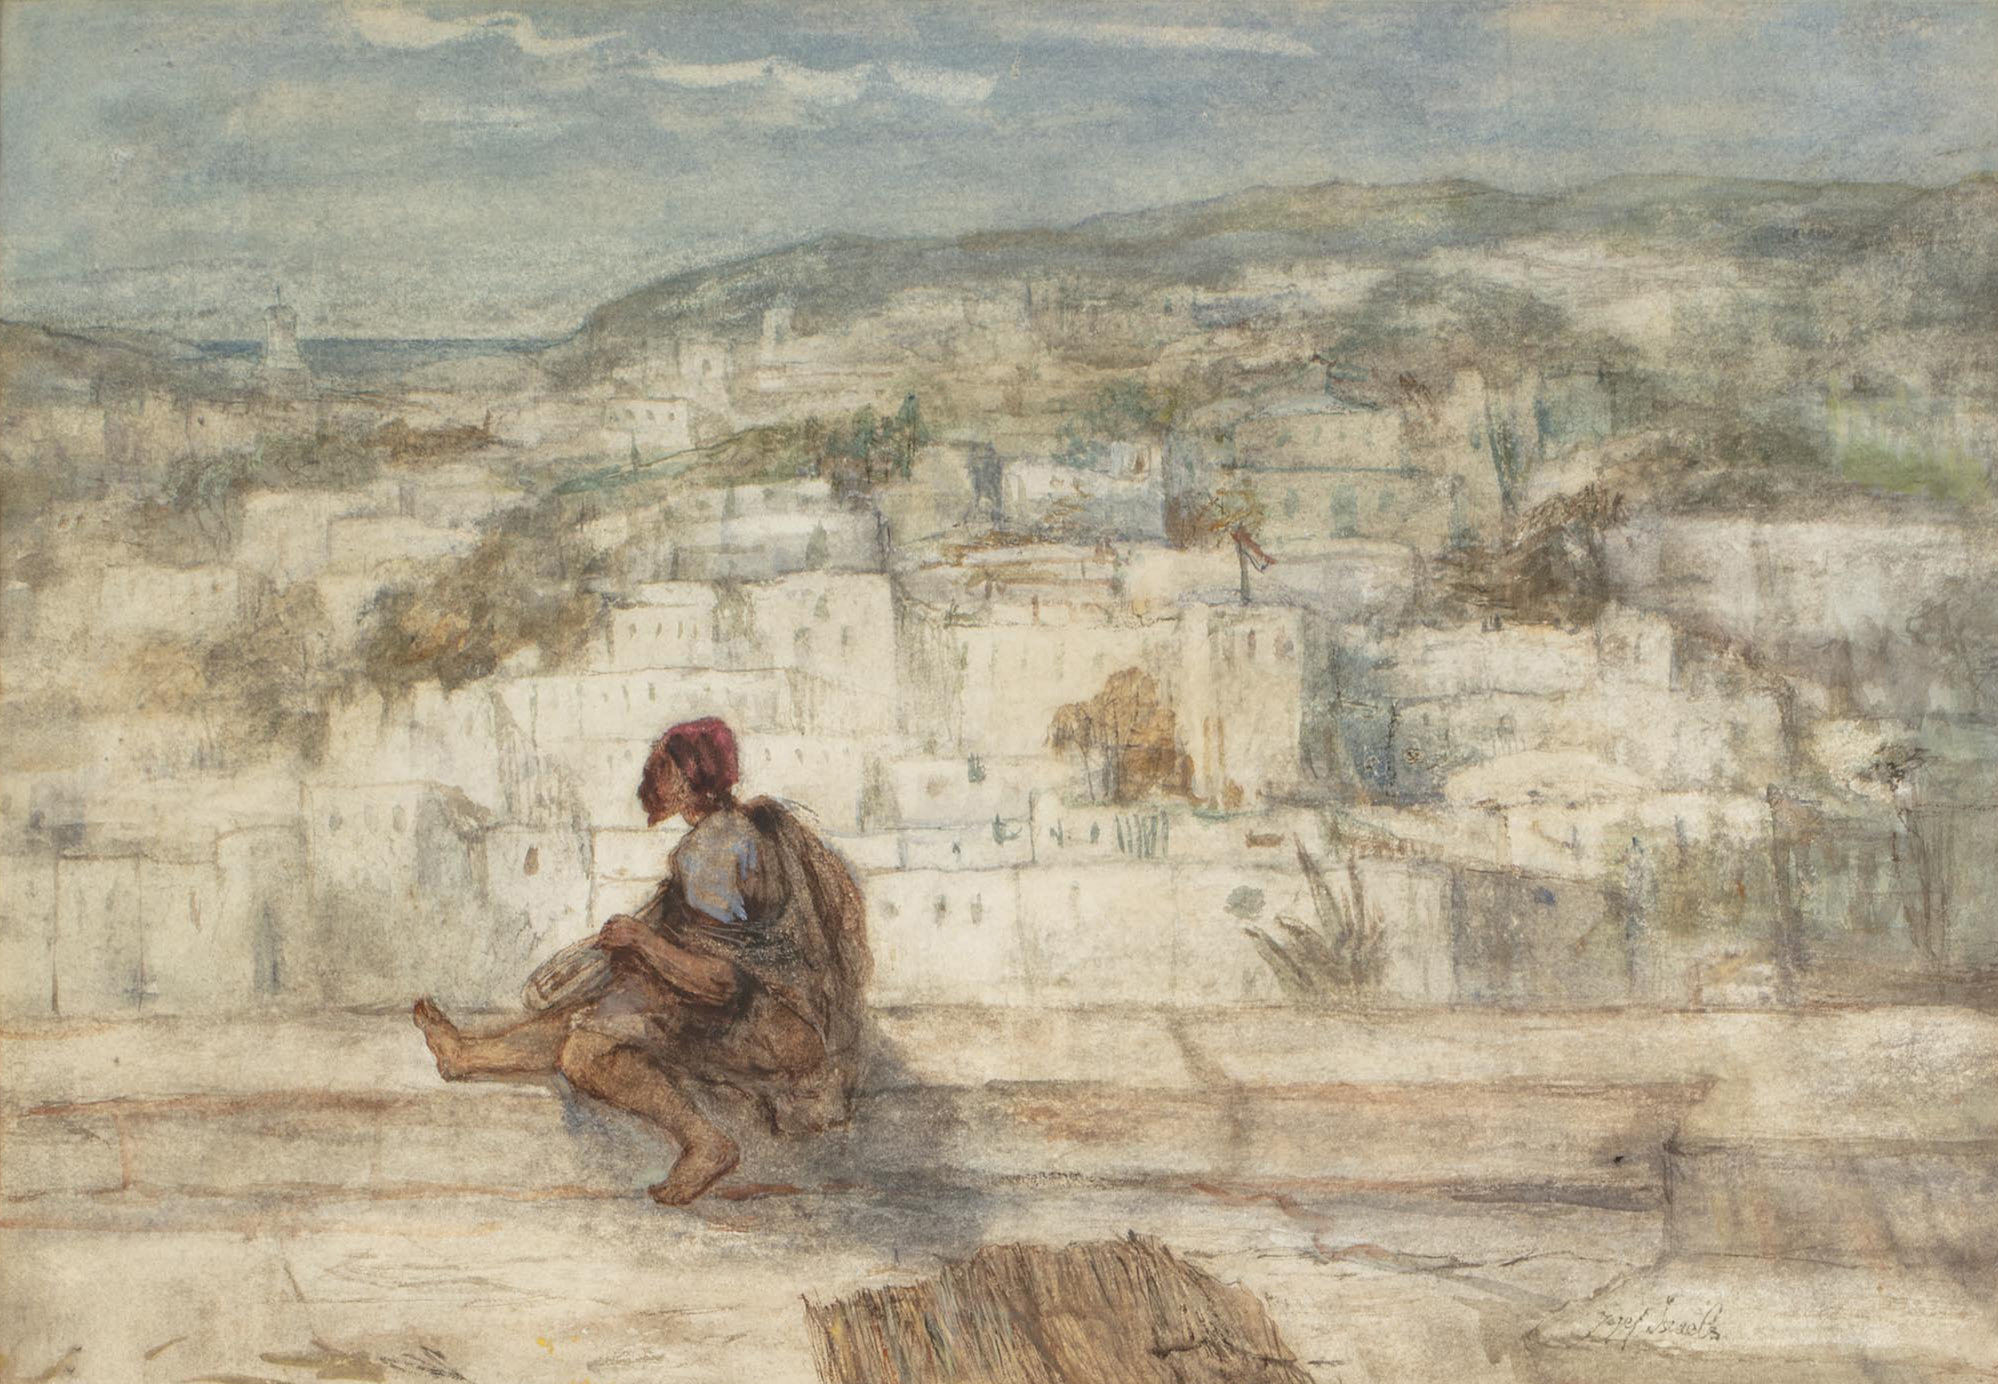 Watercolor on paper by Jozef Israels (Dutch, 1824-1911), titled Souvenir de Tanger, signed 'Jozef Israels' lower right (est. $3,000-$5,000).